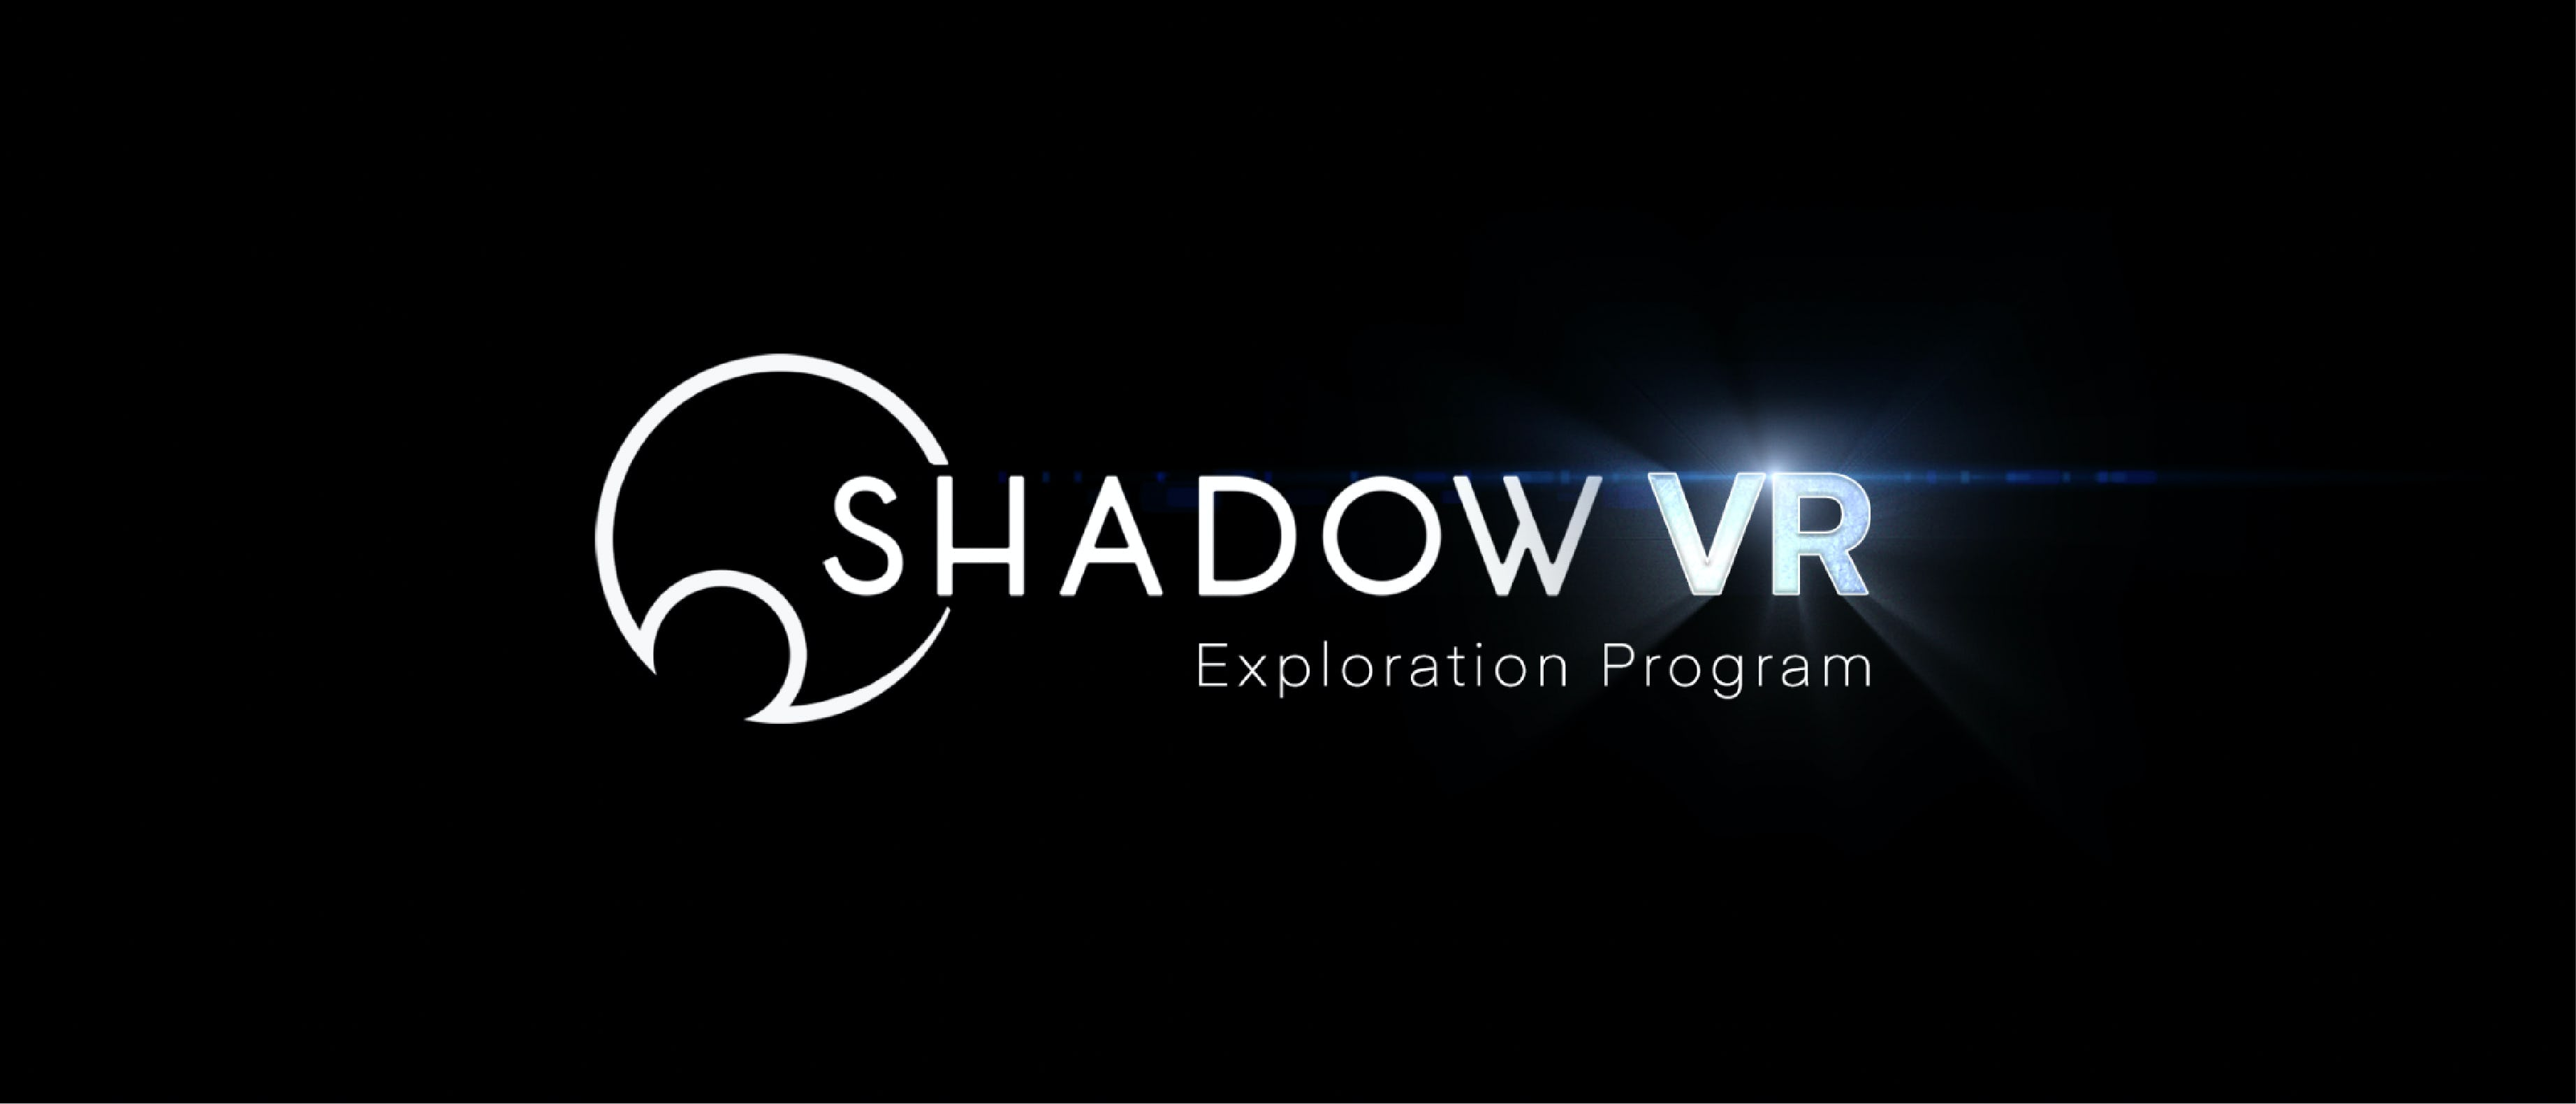 Shadow VR exploration program - header